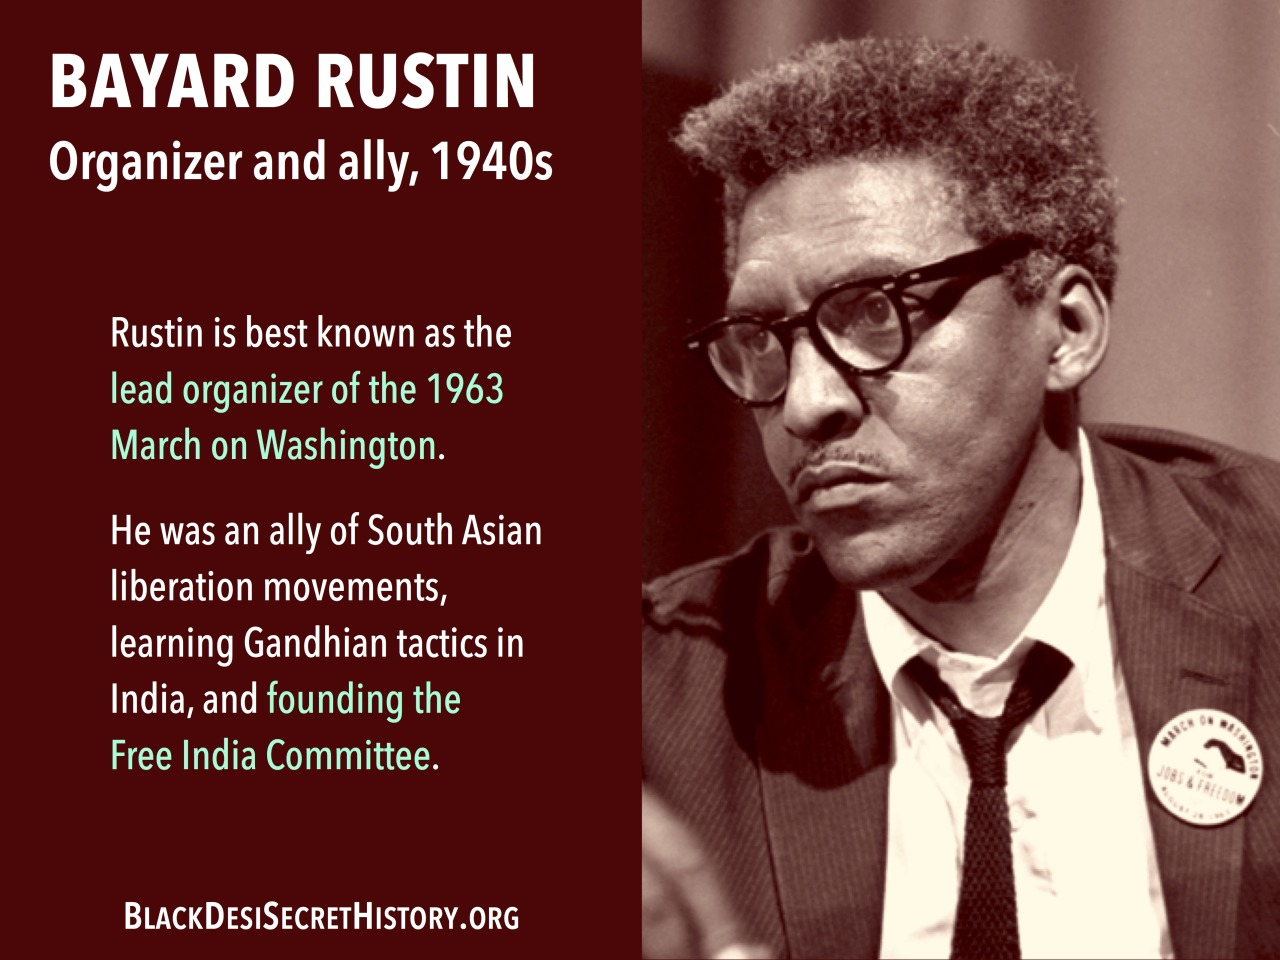 BAYARD RUSTIN, Organizer and ally, 1940s: Rustin is best known as the lead organizer of the 1963 March on Washington. He was also an ally of South Asian liberation movements, repeatedly getting arrested while protesting British colonization of India.